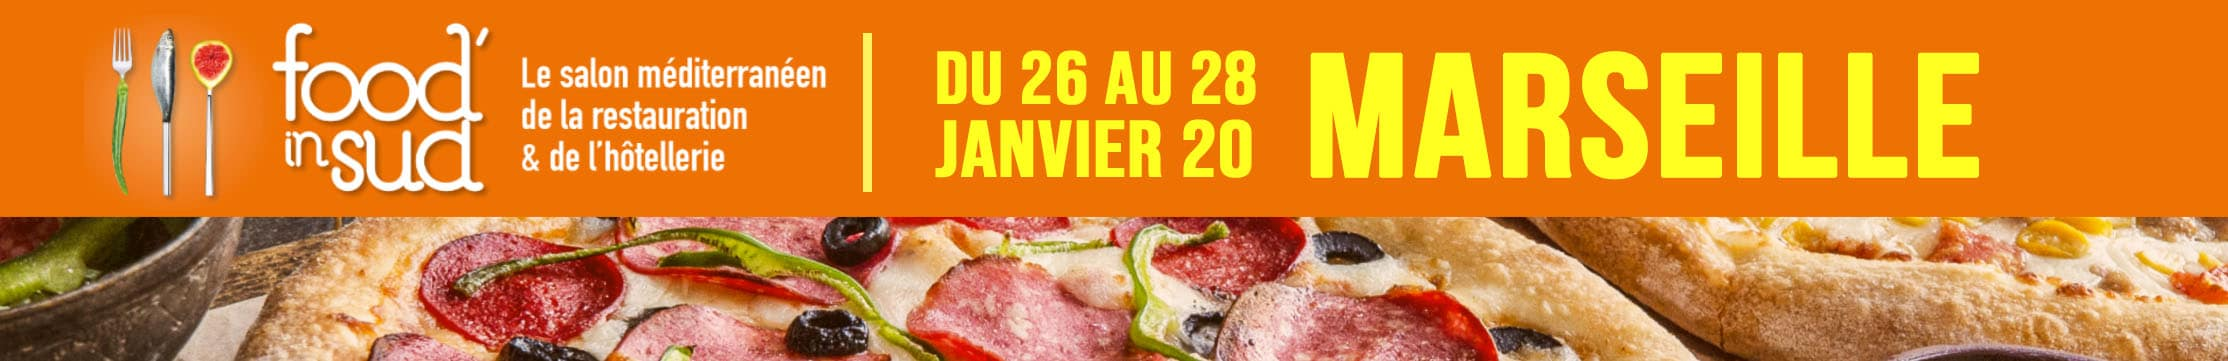 salon food'in'sud marseille 2020 pizzadoor stand